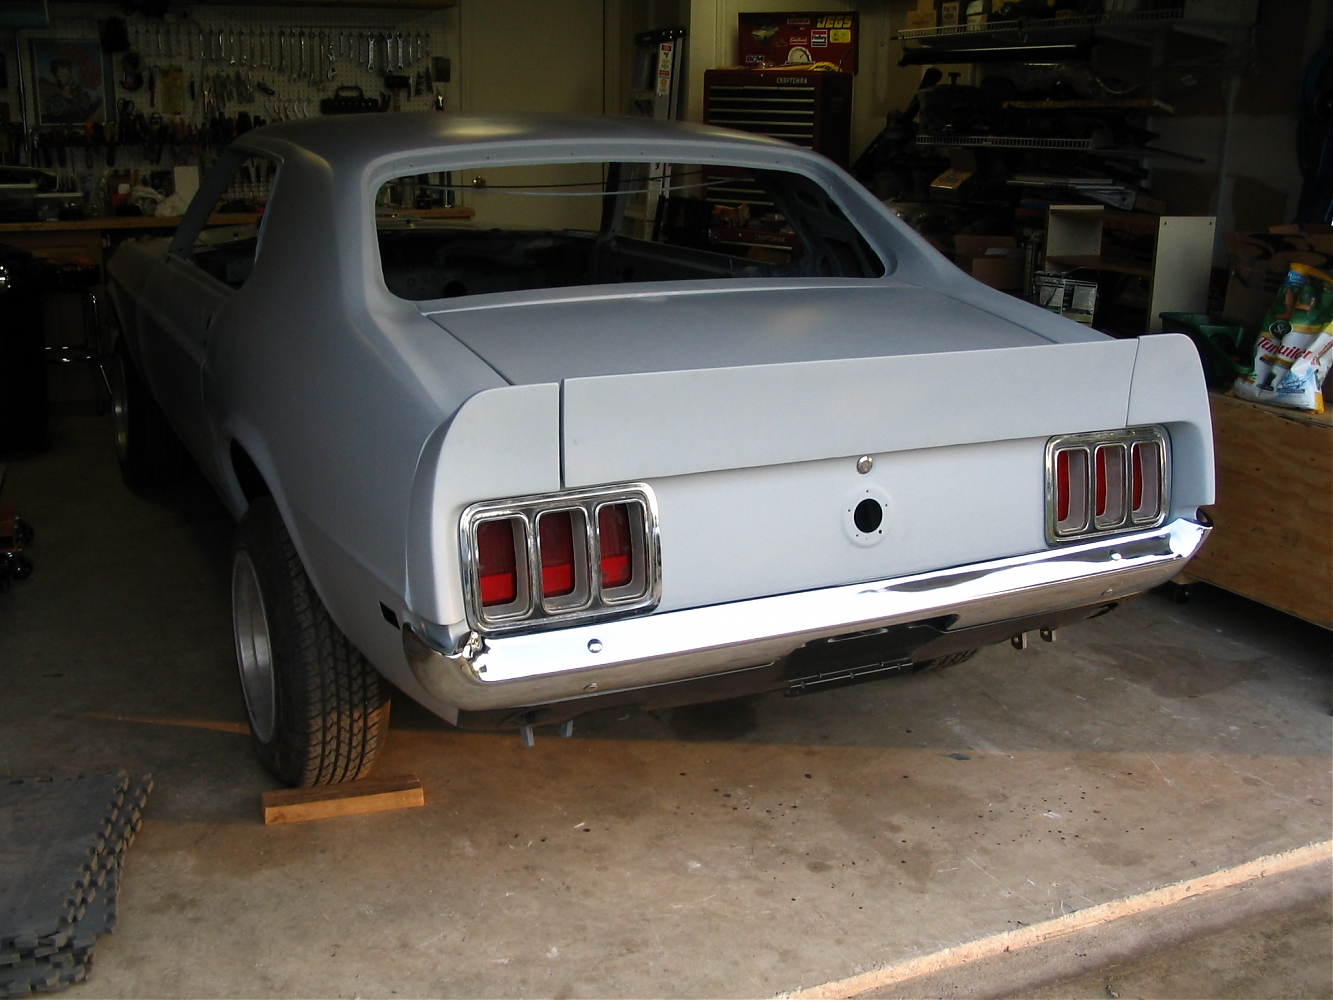 1970 Mustang Coupe Restoration In Progress Ford Muscle